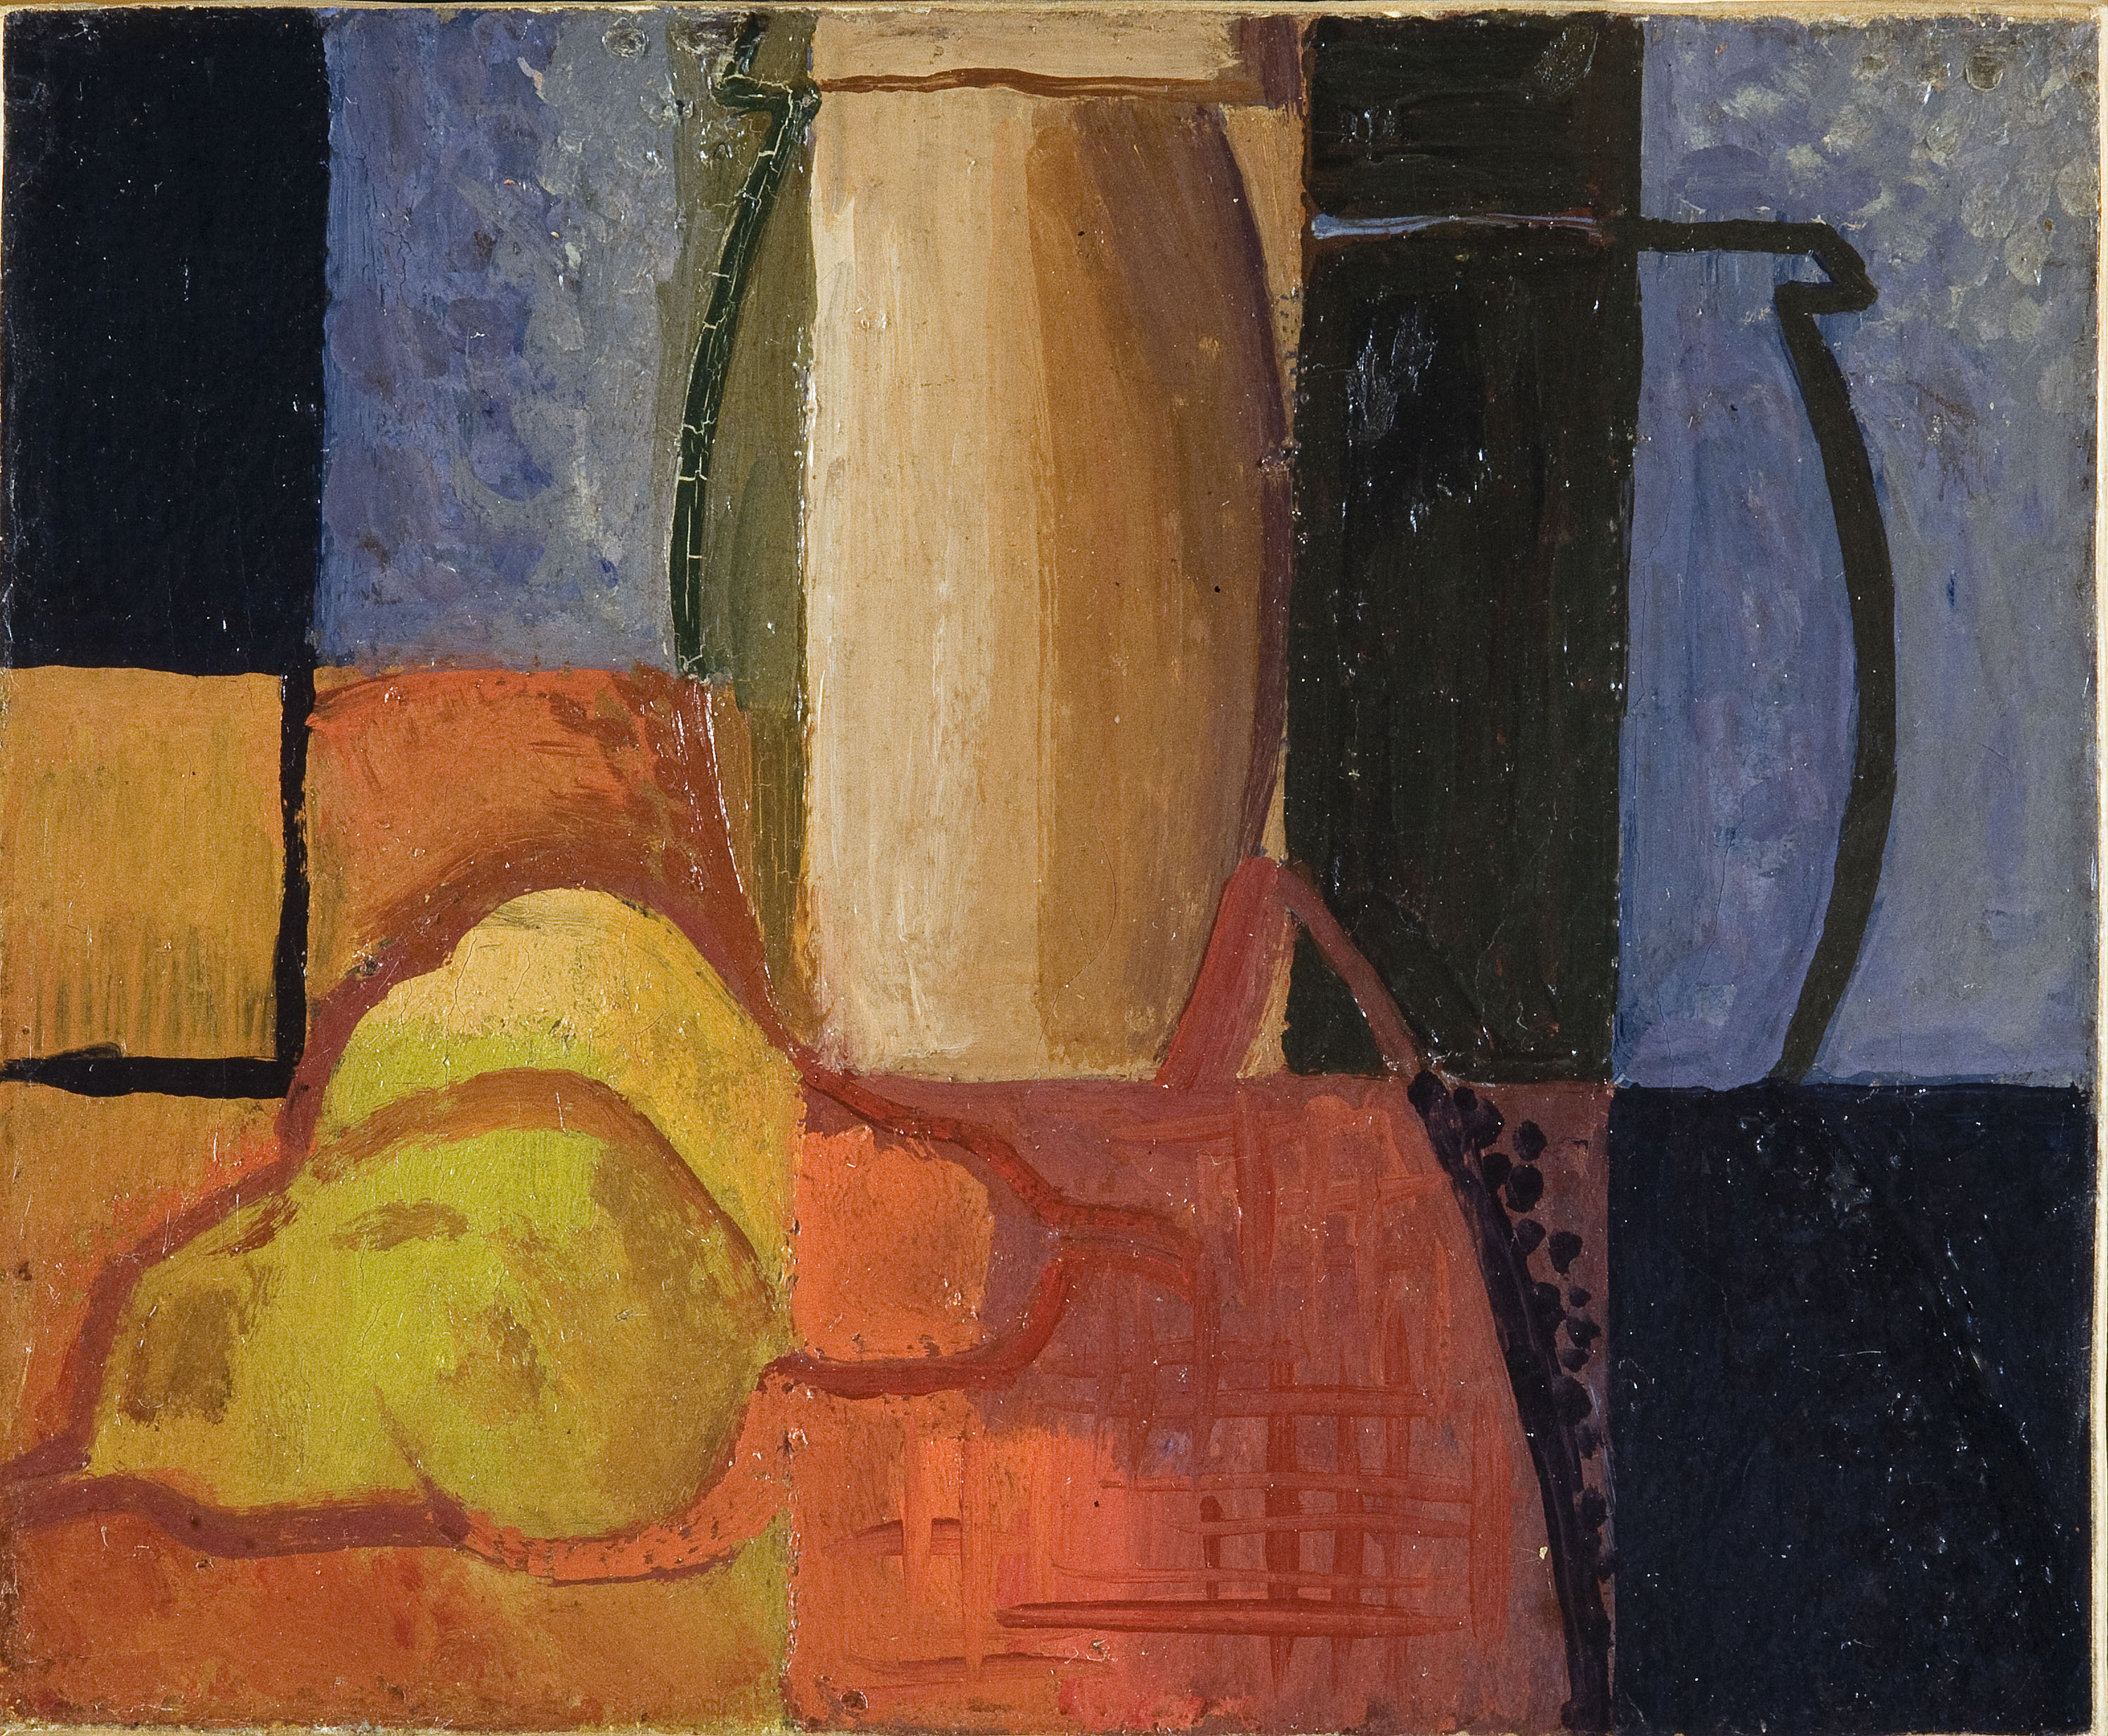 Pere Daura - Still Life with Two Vases and Two Pears - Circa 1929